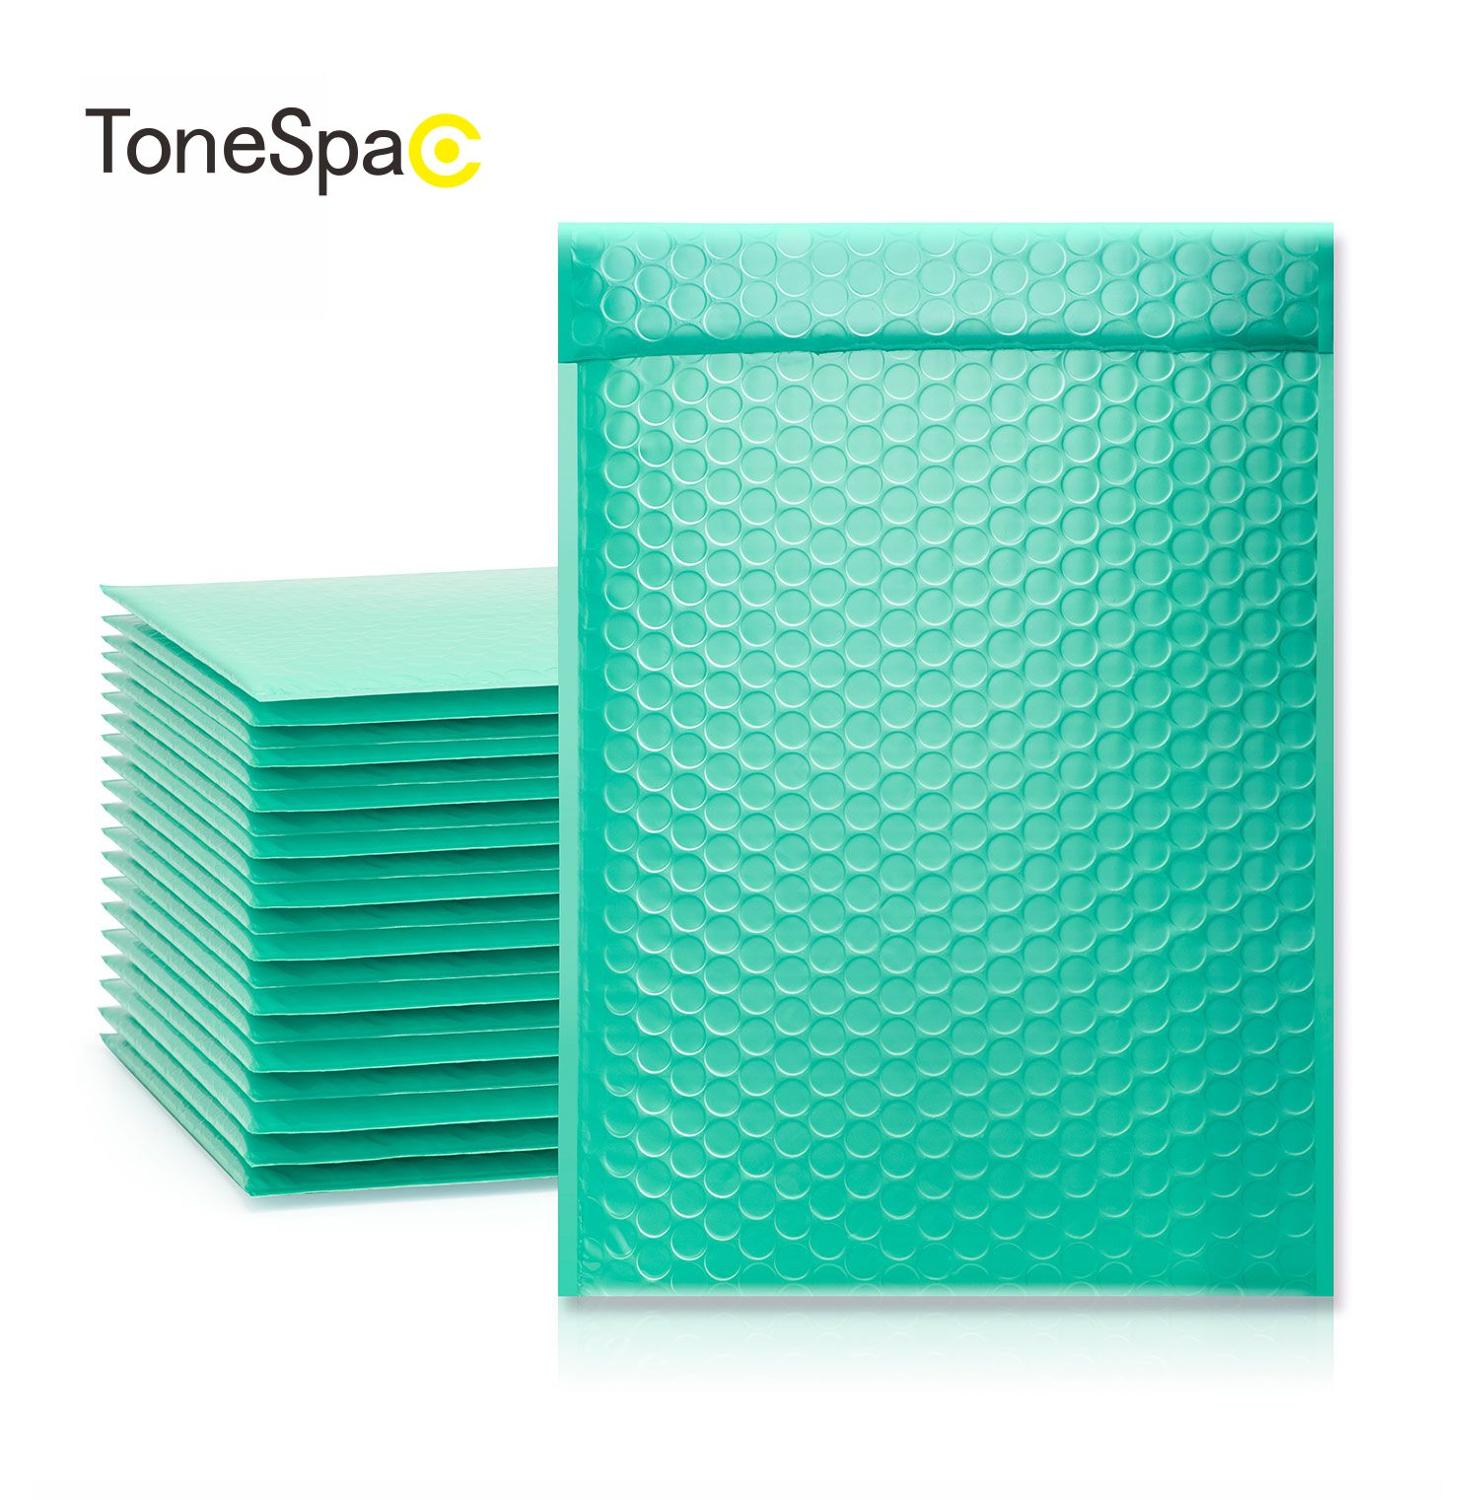 TONESPAC 287*380mm 25pcs Poly Bubble Padded Wrap Envelope Mailer Packaging Shipping Self Seal Waterproof Bags Teal